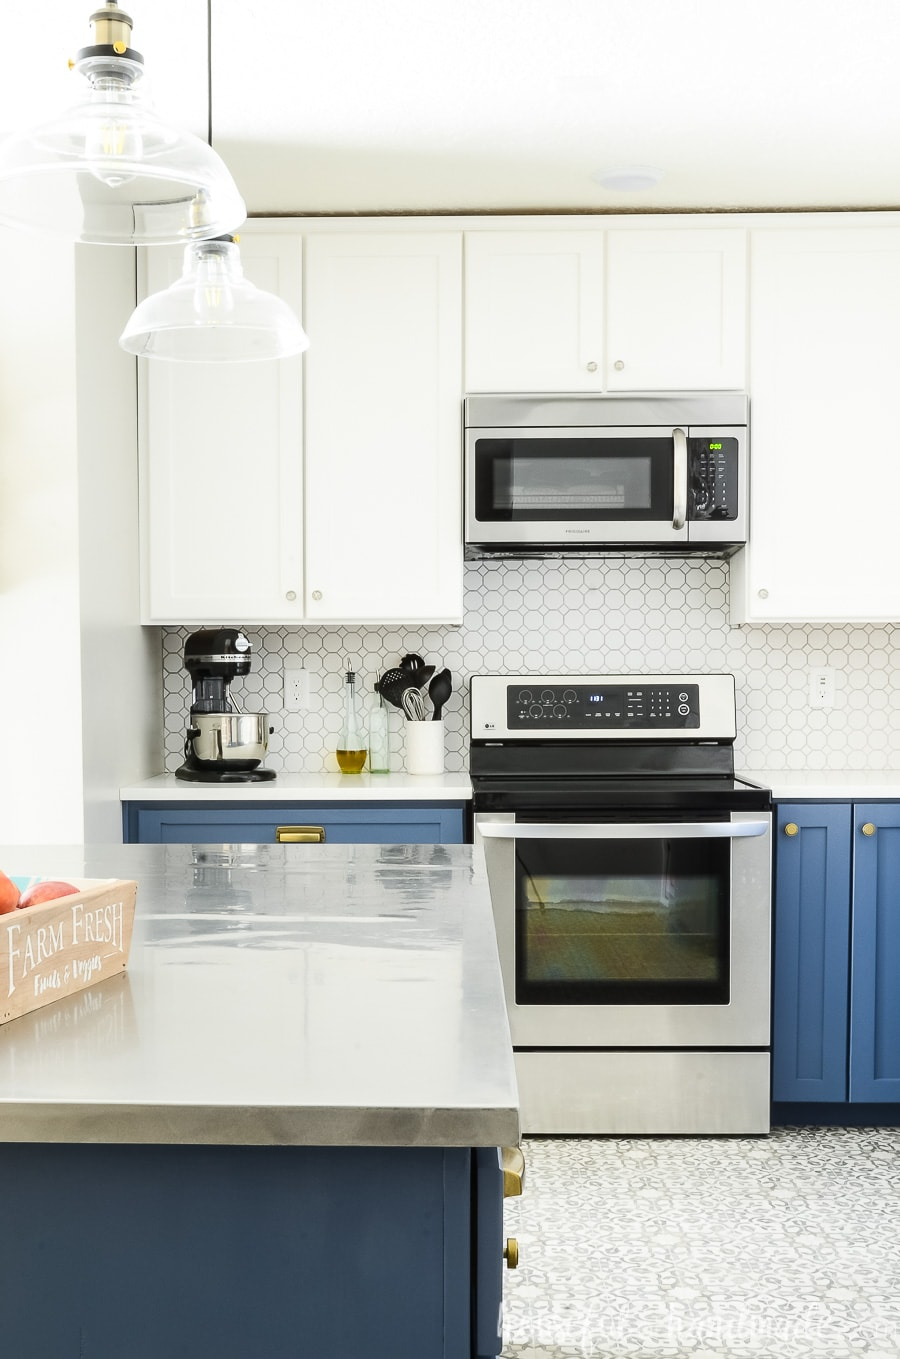 Kitchen remodel with DIY cabinets for the walls in white and blue.